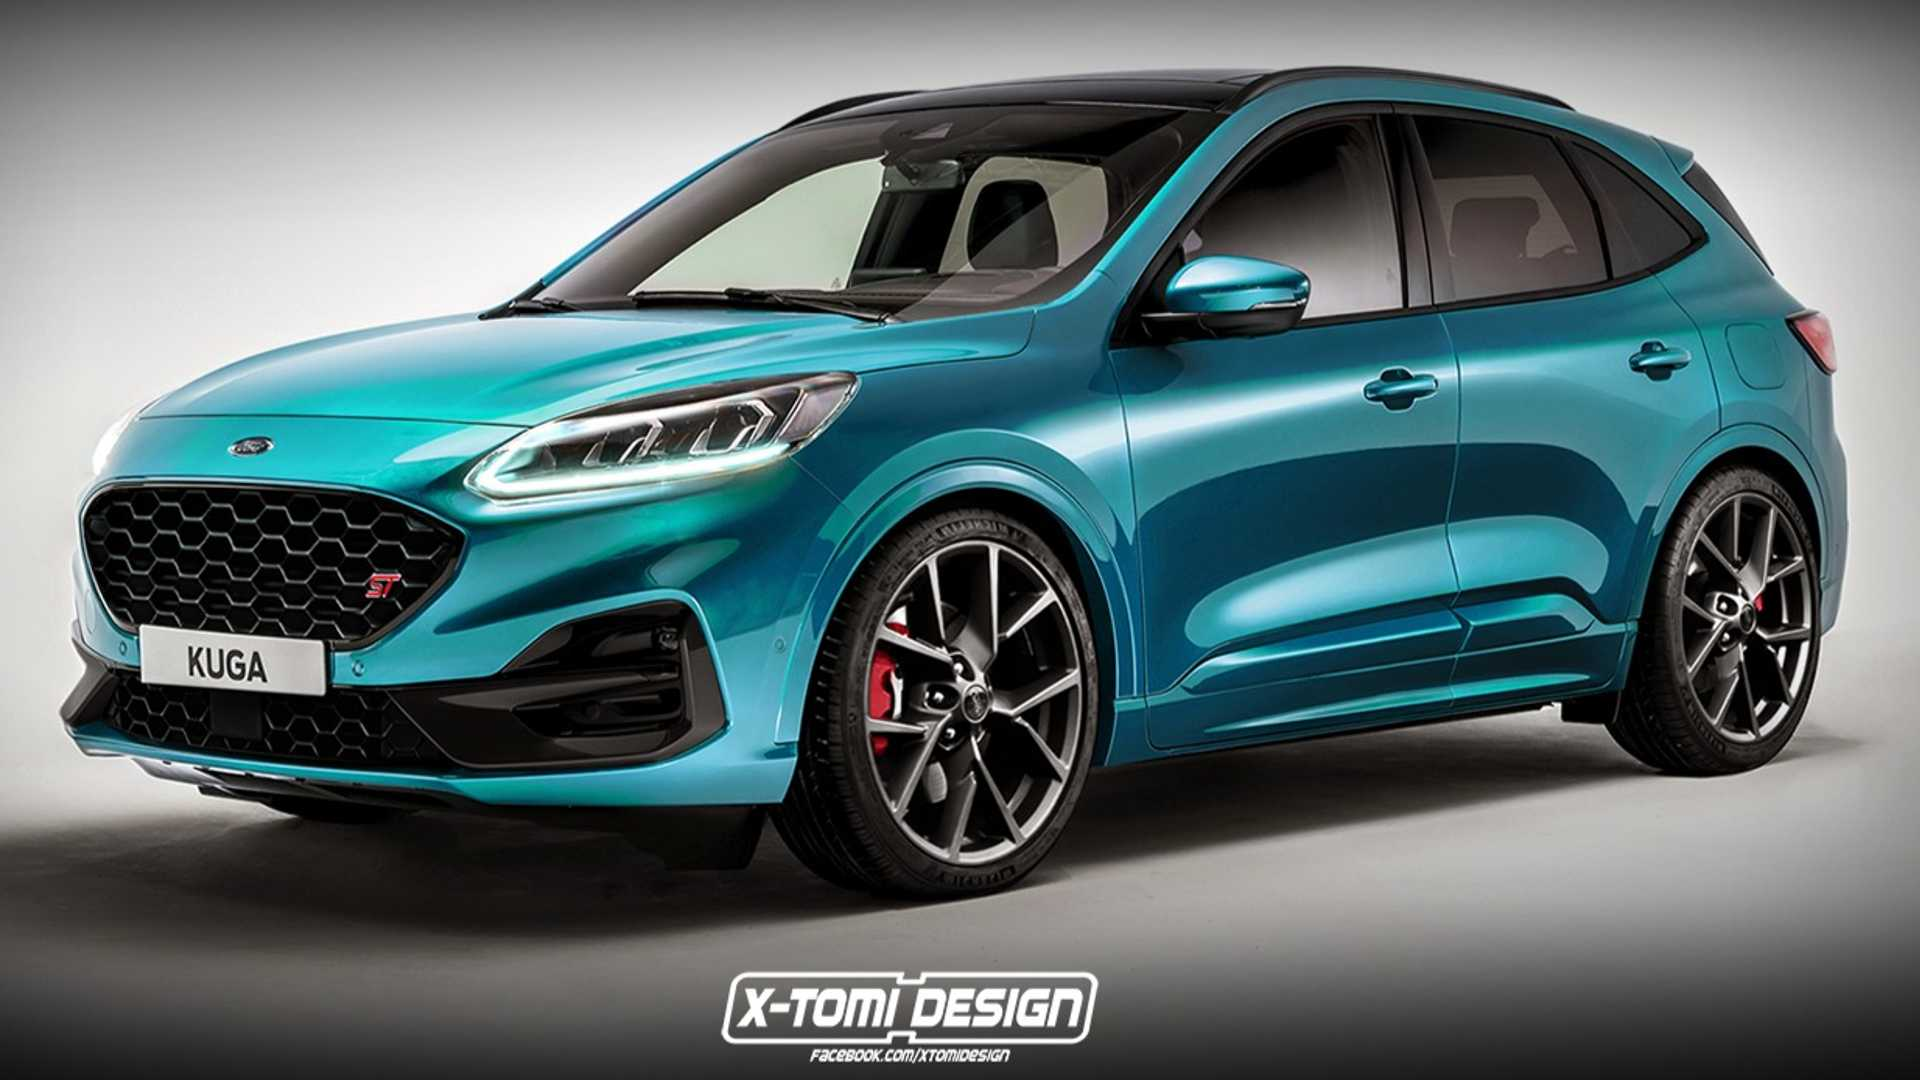 14 New Ford Kuga 2020 Uk Release Date with Ford Kuga 2020 Uk